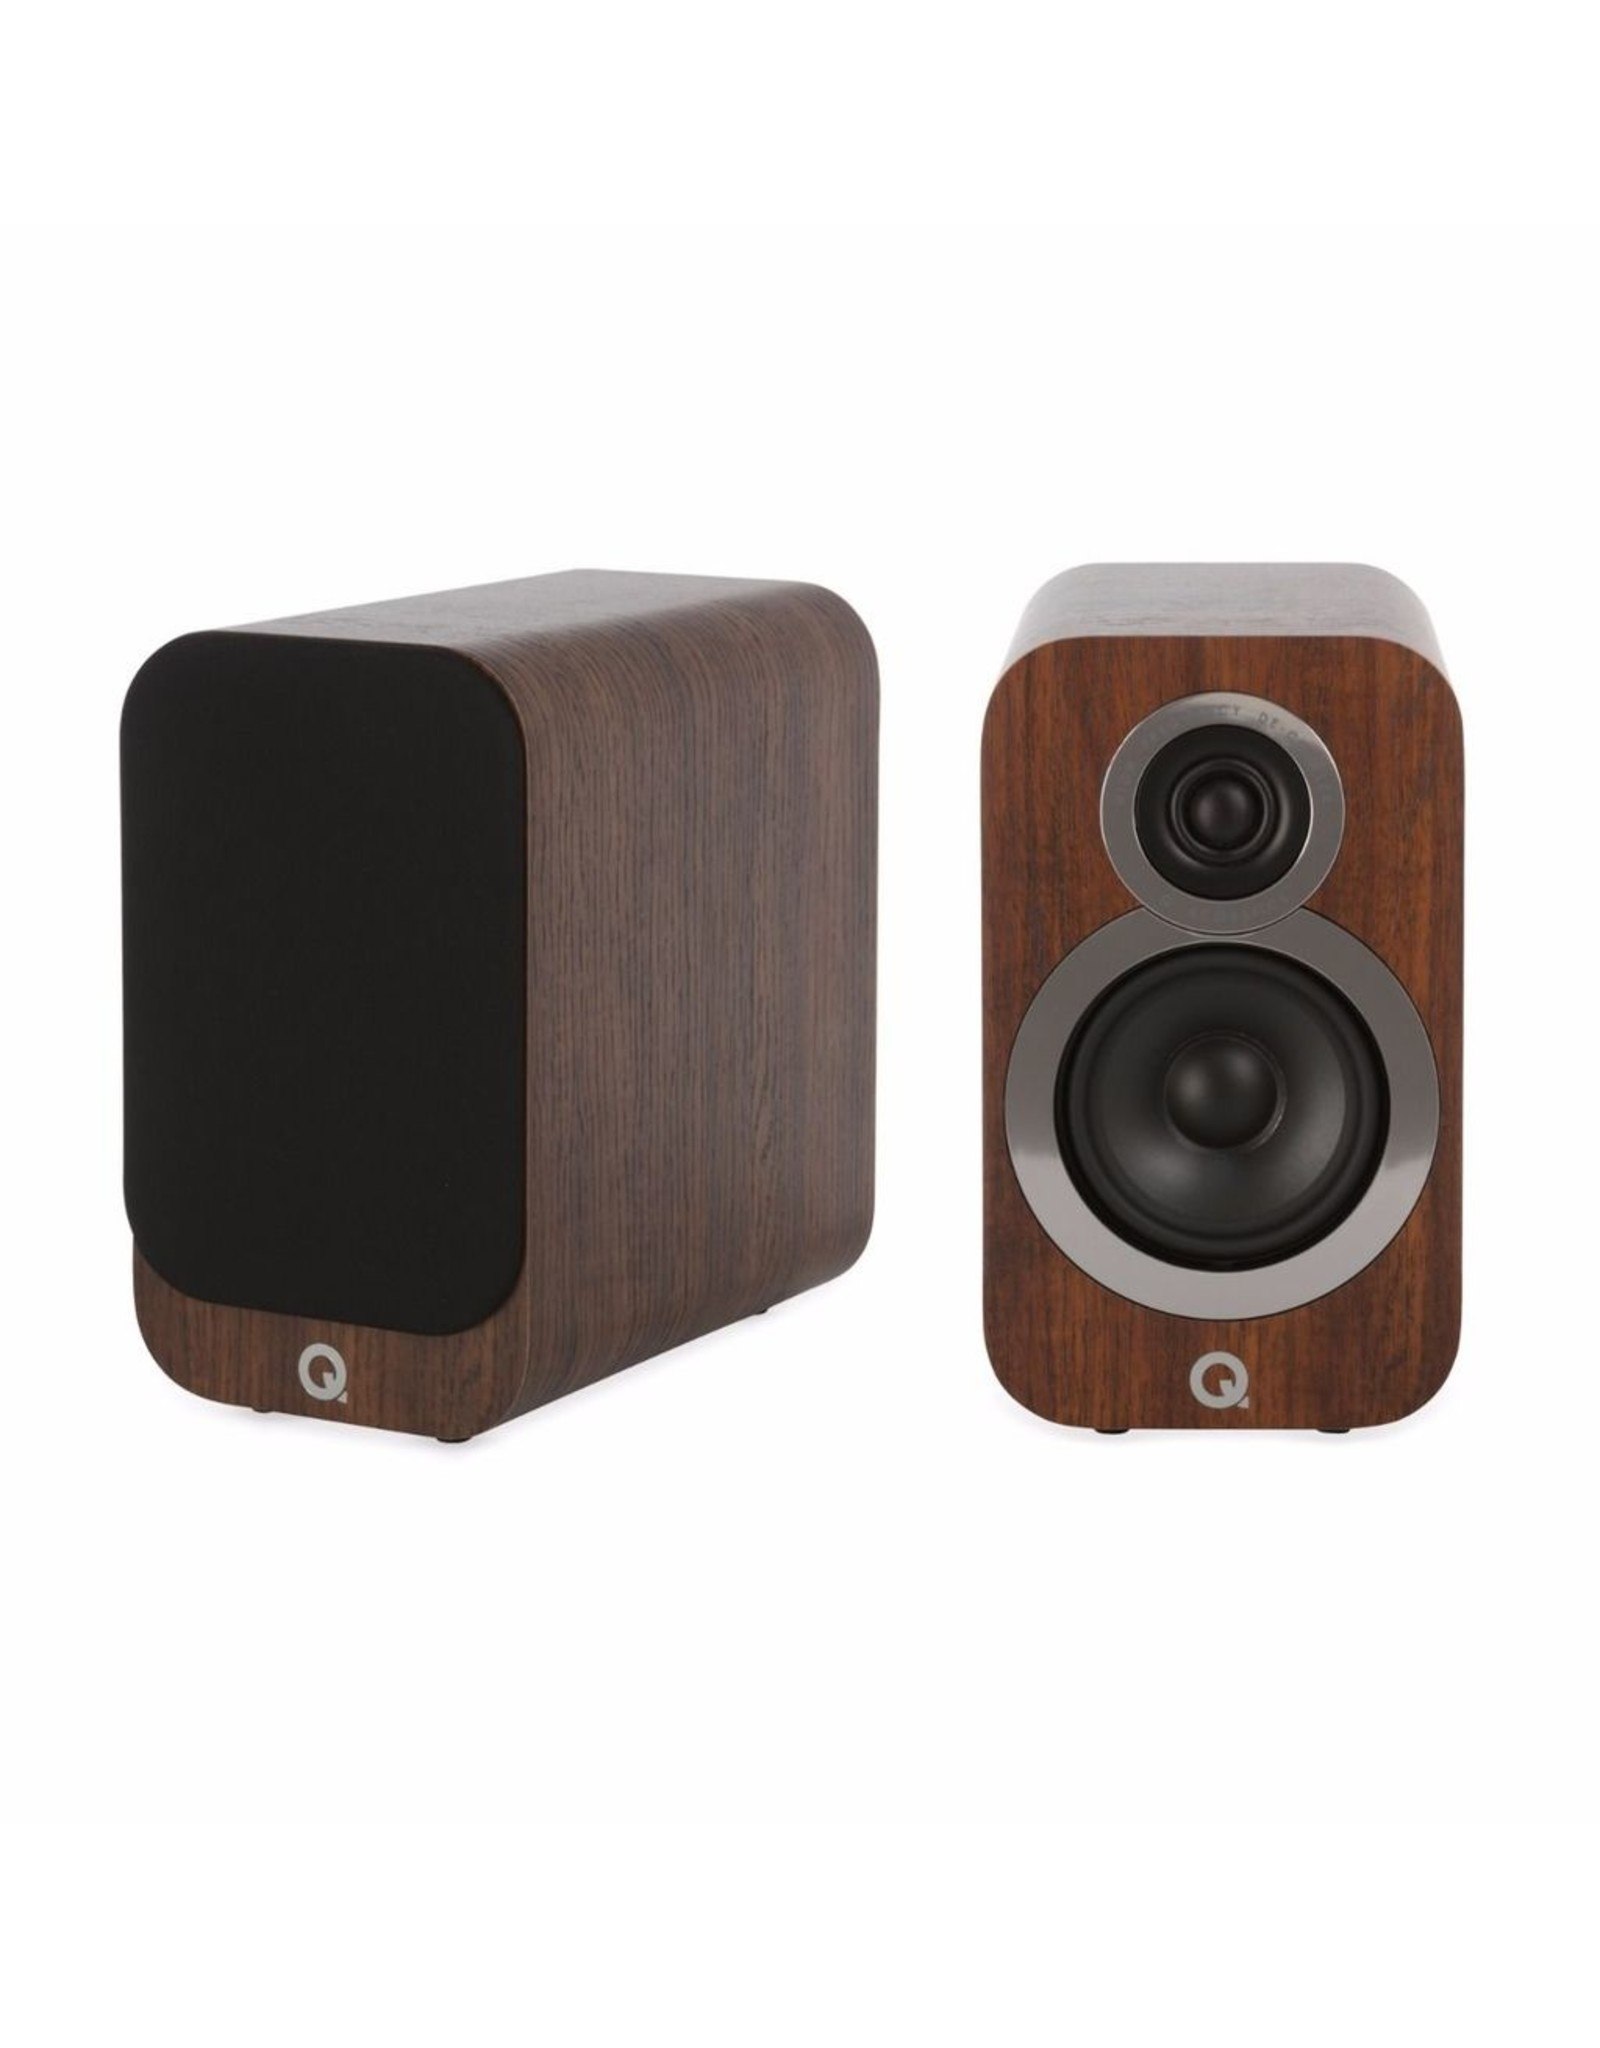 Q ACOUSTICS Q ACOUSTICS Q3010i Bookshelf Speakers (pair)